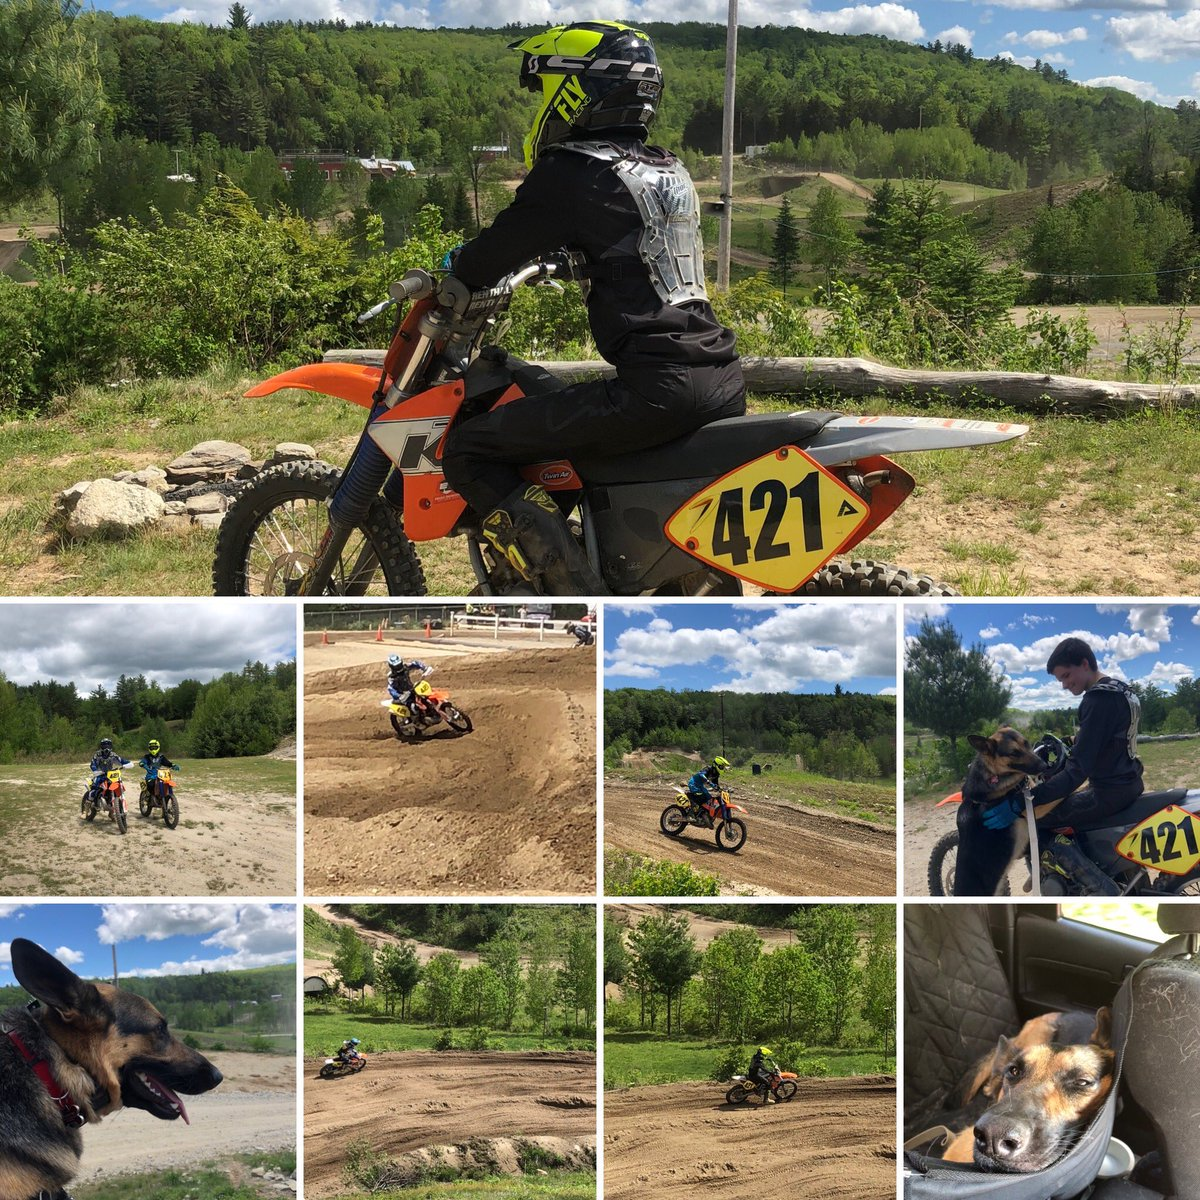 Today was a much needed day at the track. Rosie came along as our moto dog and did a great job #familytime #motofamily #Lifeisgoodpic.twitter.com/qS6405REXF